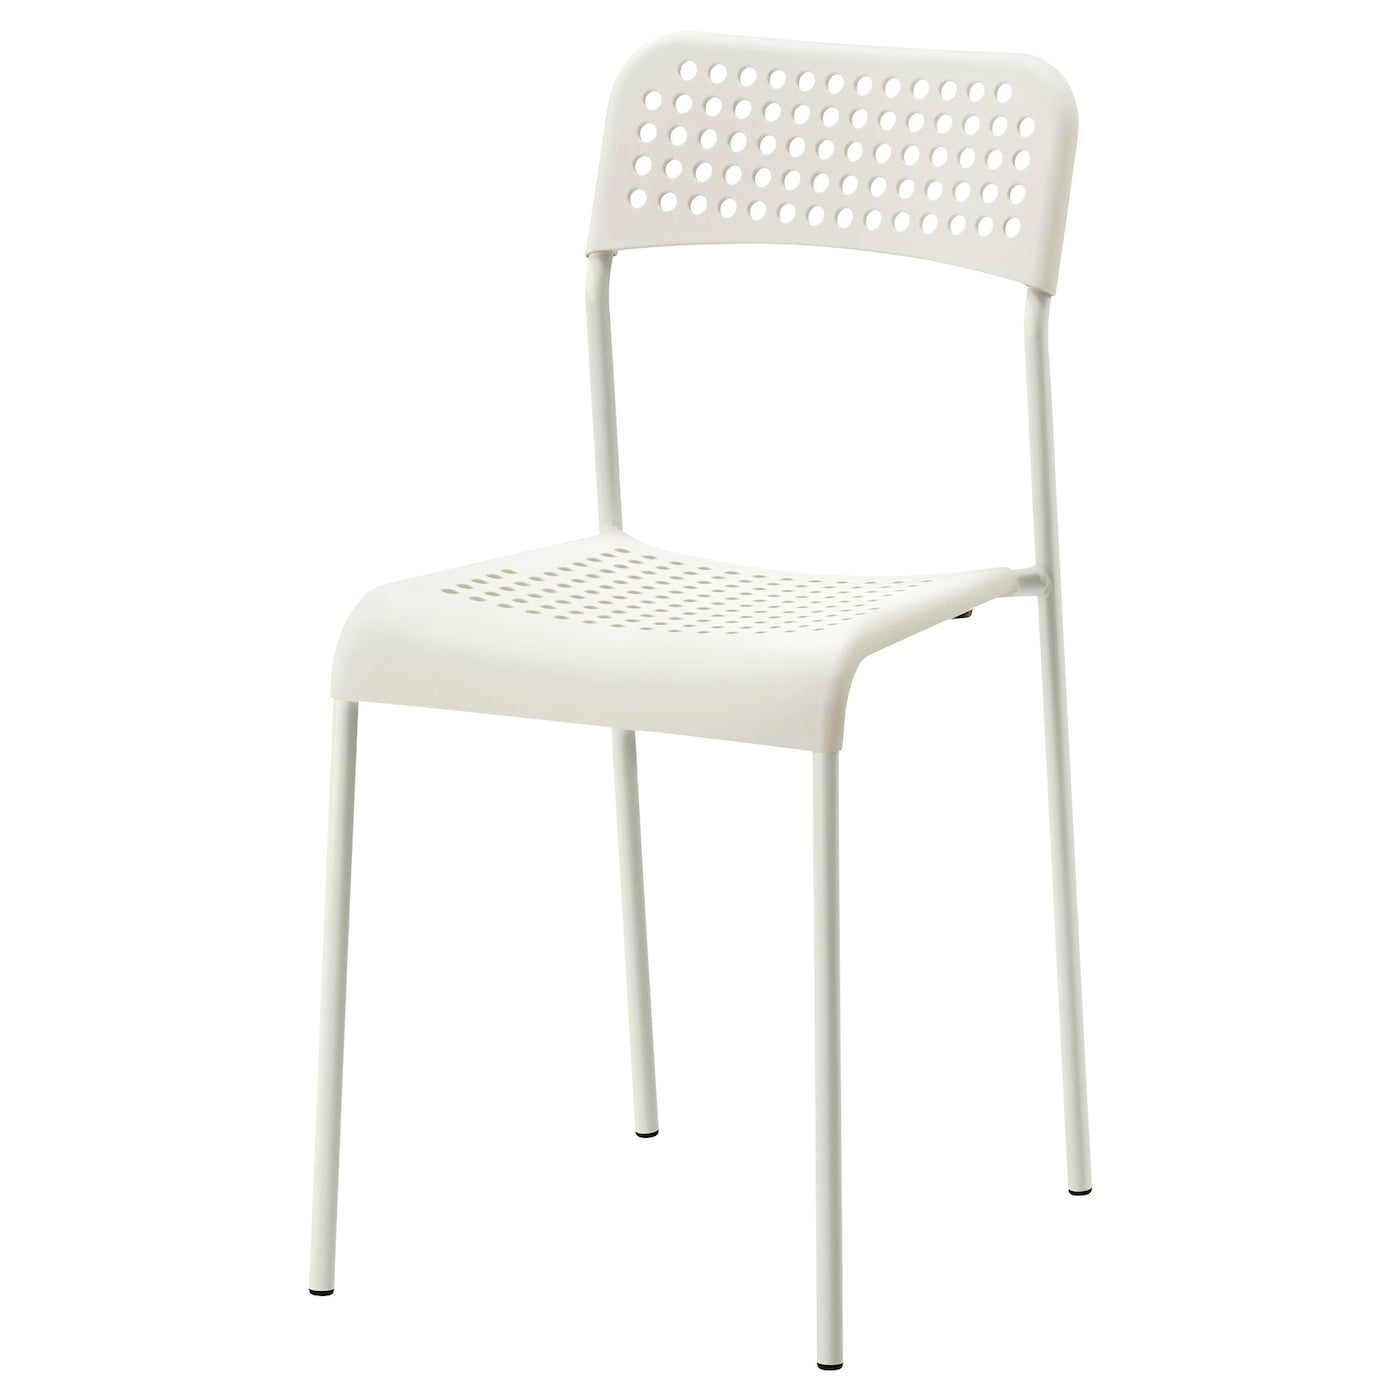 Chairs stools benches ikea ireland dublin for Sgabelli ikea